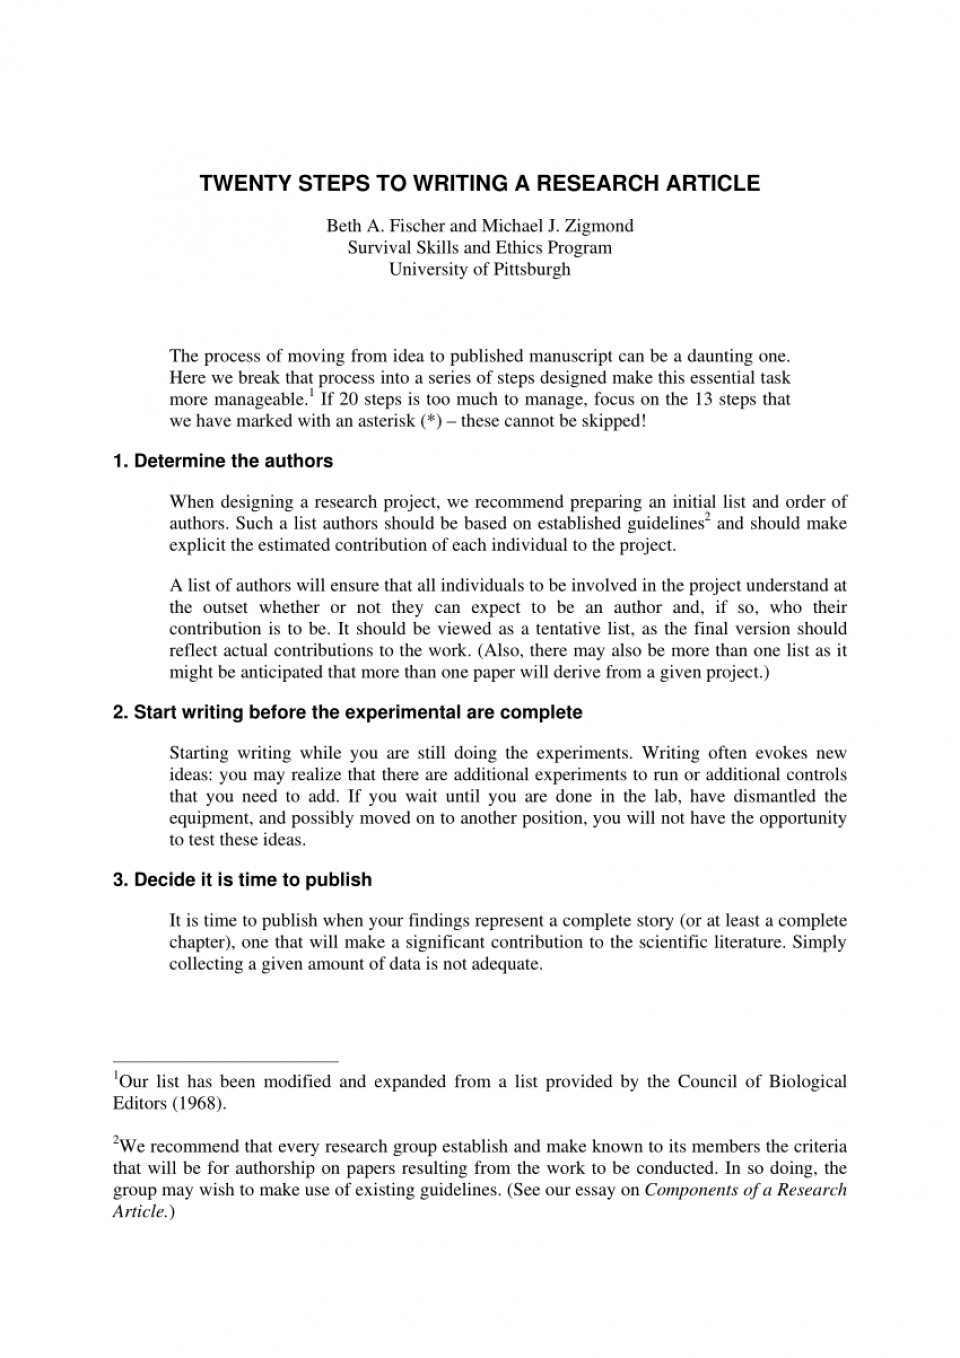 019 Writing Of Research Paper Fascinating Great Pdf Harvard Style Sample 960